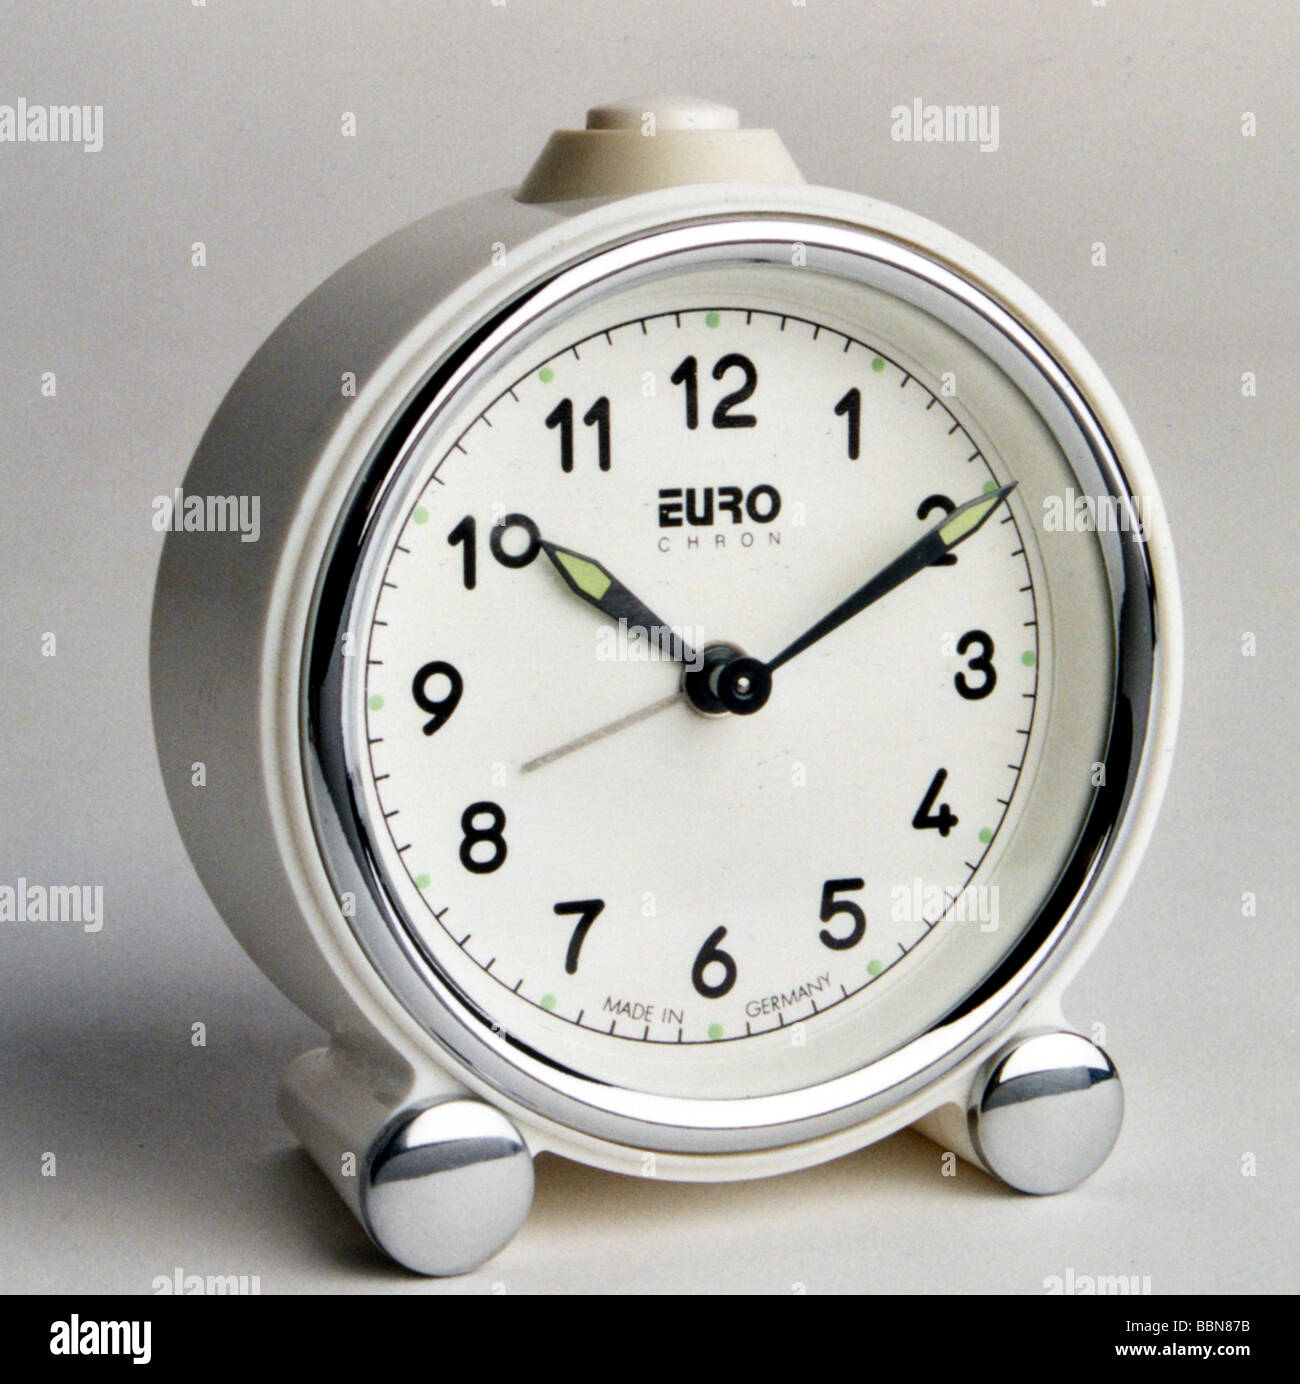 clocks, mechanic alarm clock caliber 62, West Export Version of EUROCHRON brand, made by VEB Uhrenwerke Ruhla, Kombinat - Stock Image